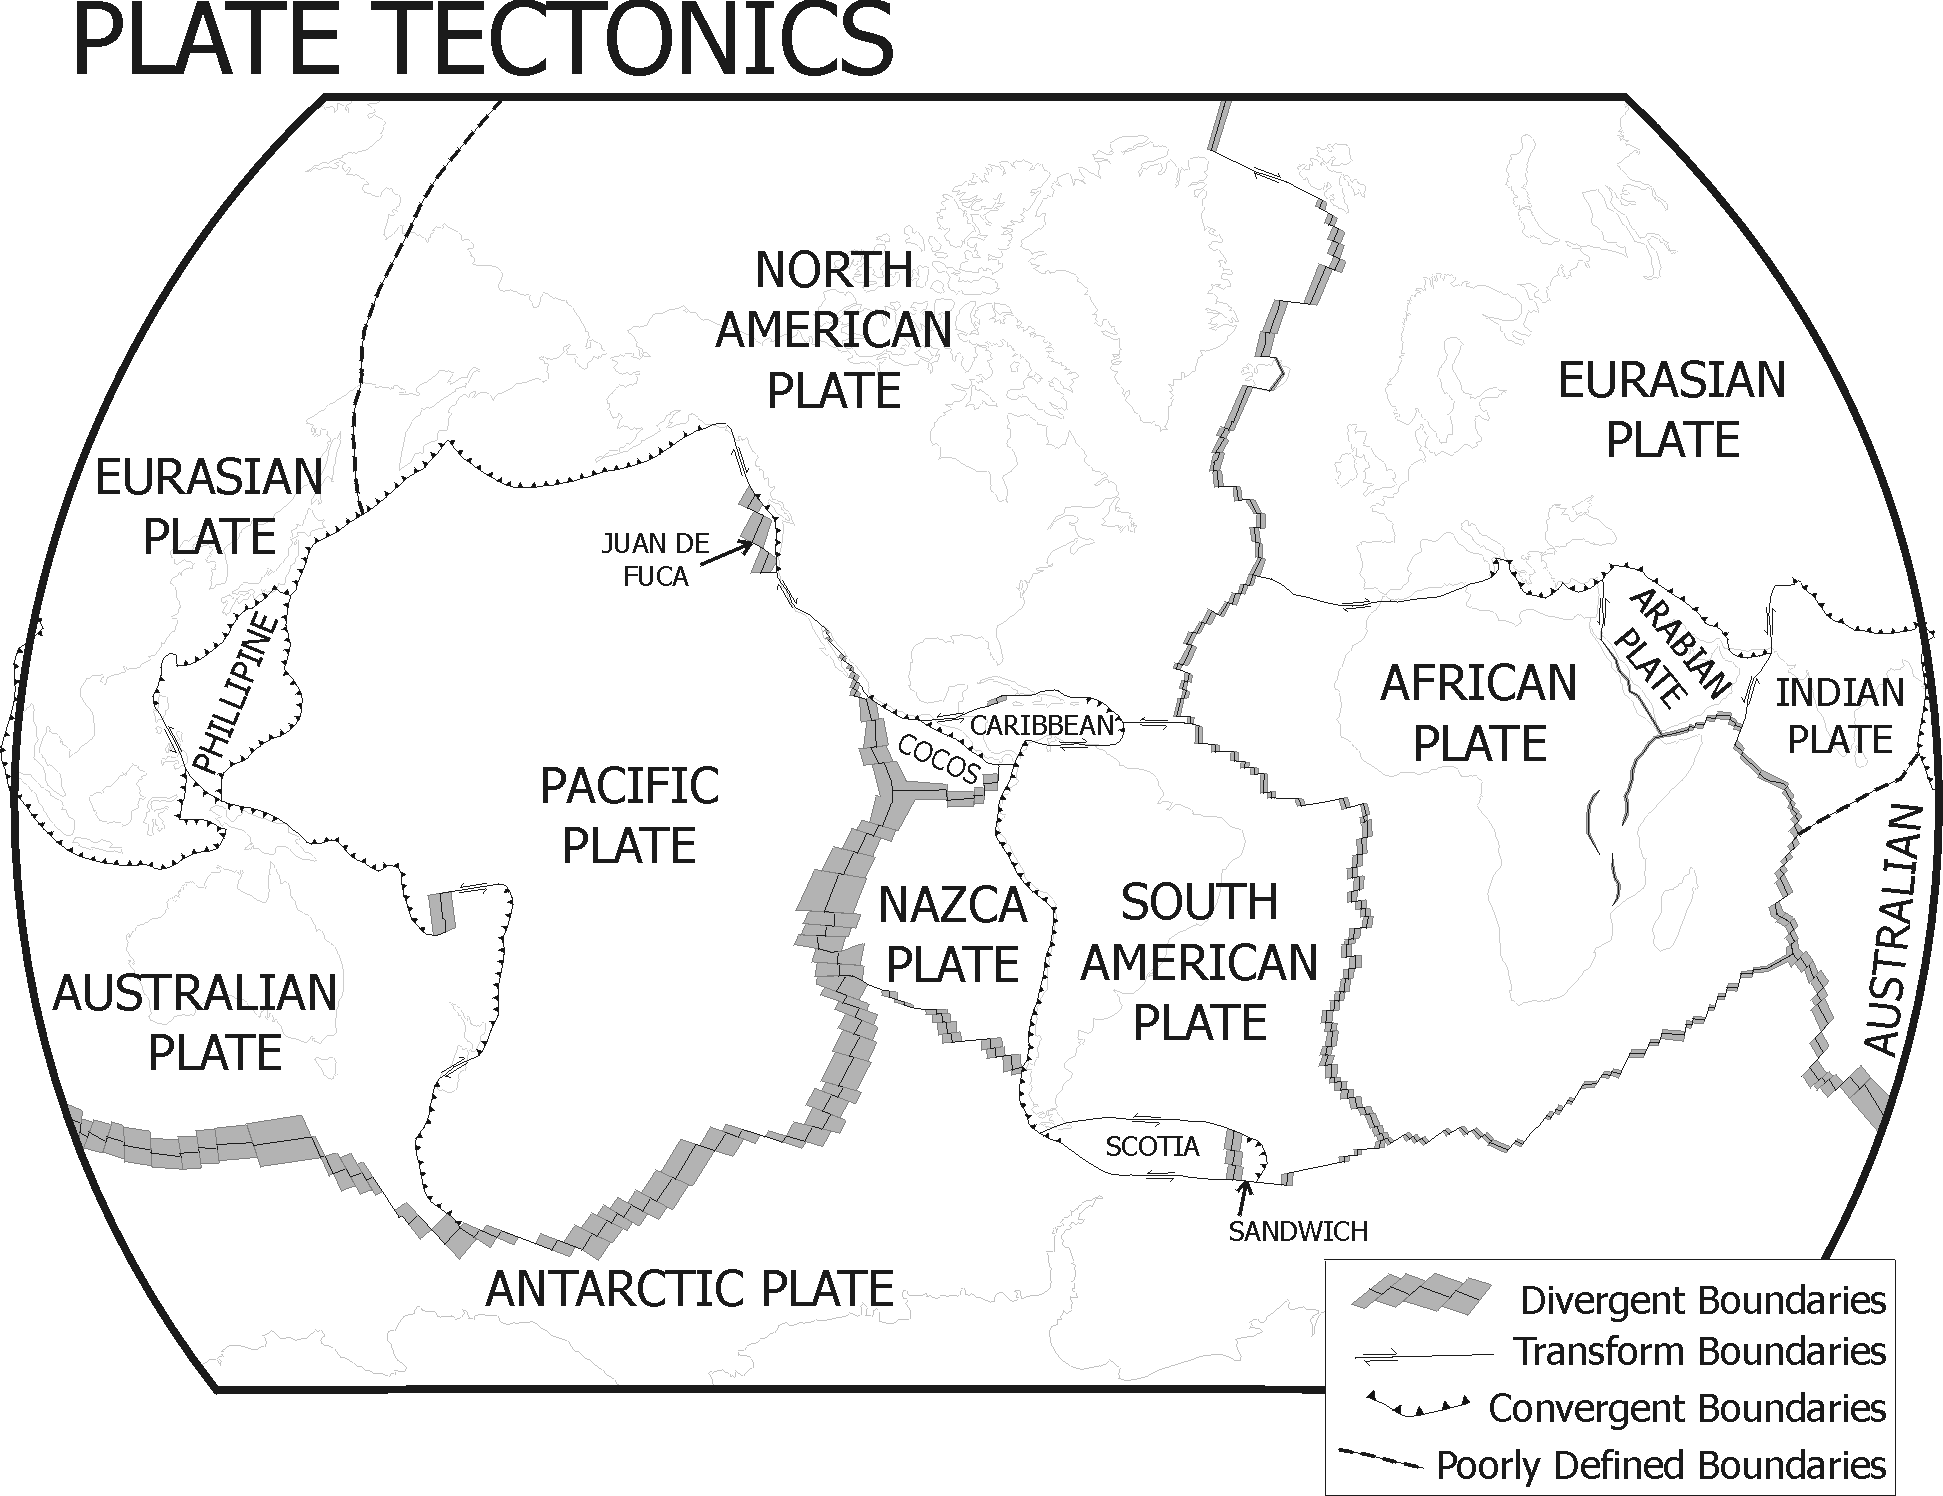 plate tectonics essay paper Reflection paper cweaver 030514 - free download as word doc (doc / docx),  pdf  next, i reviewed our textbook to re-familiarize myself with plate tectonics.